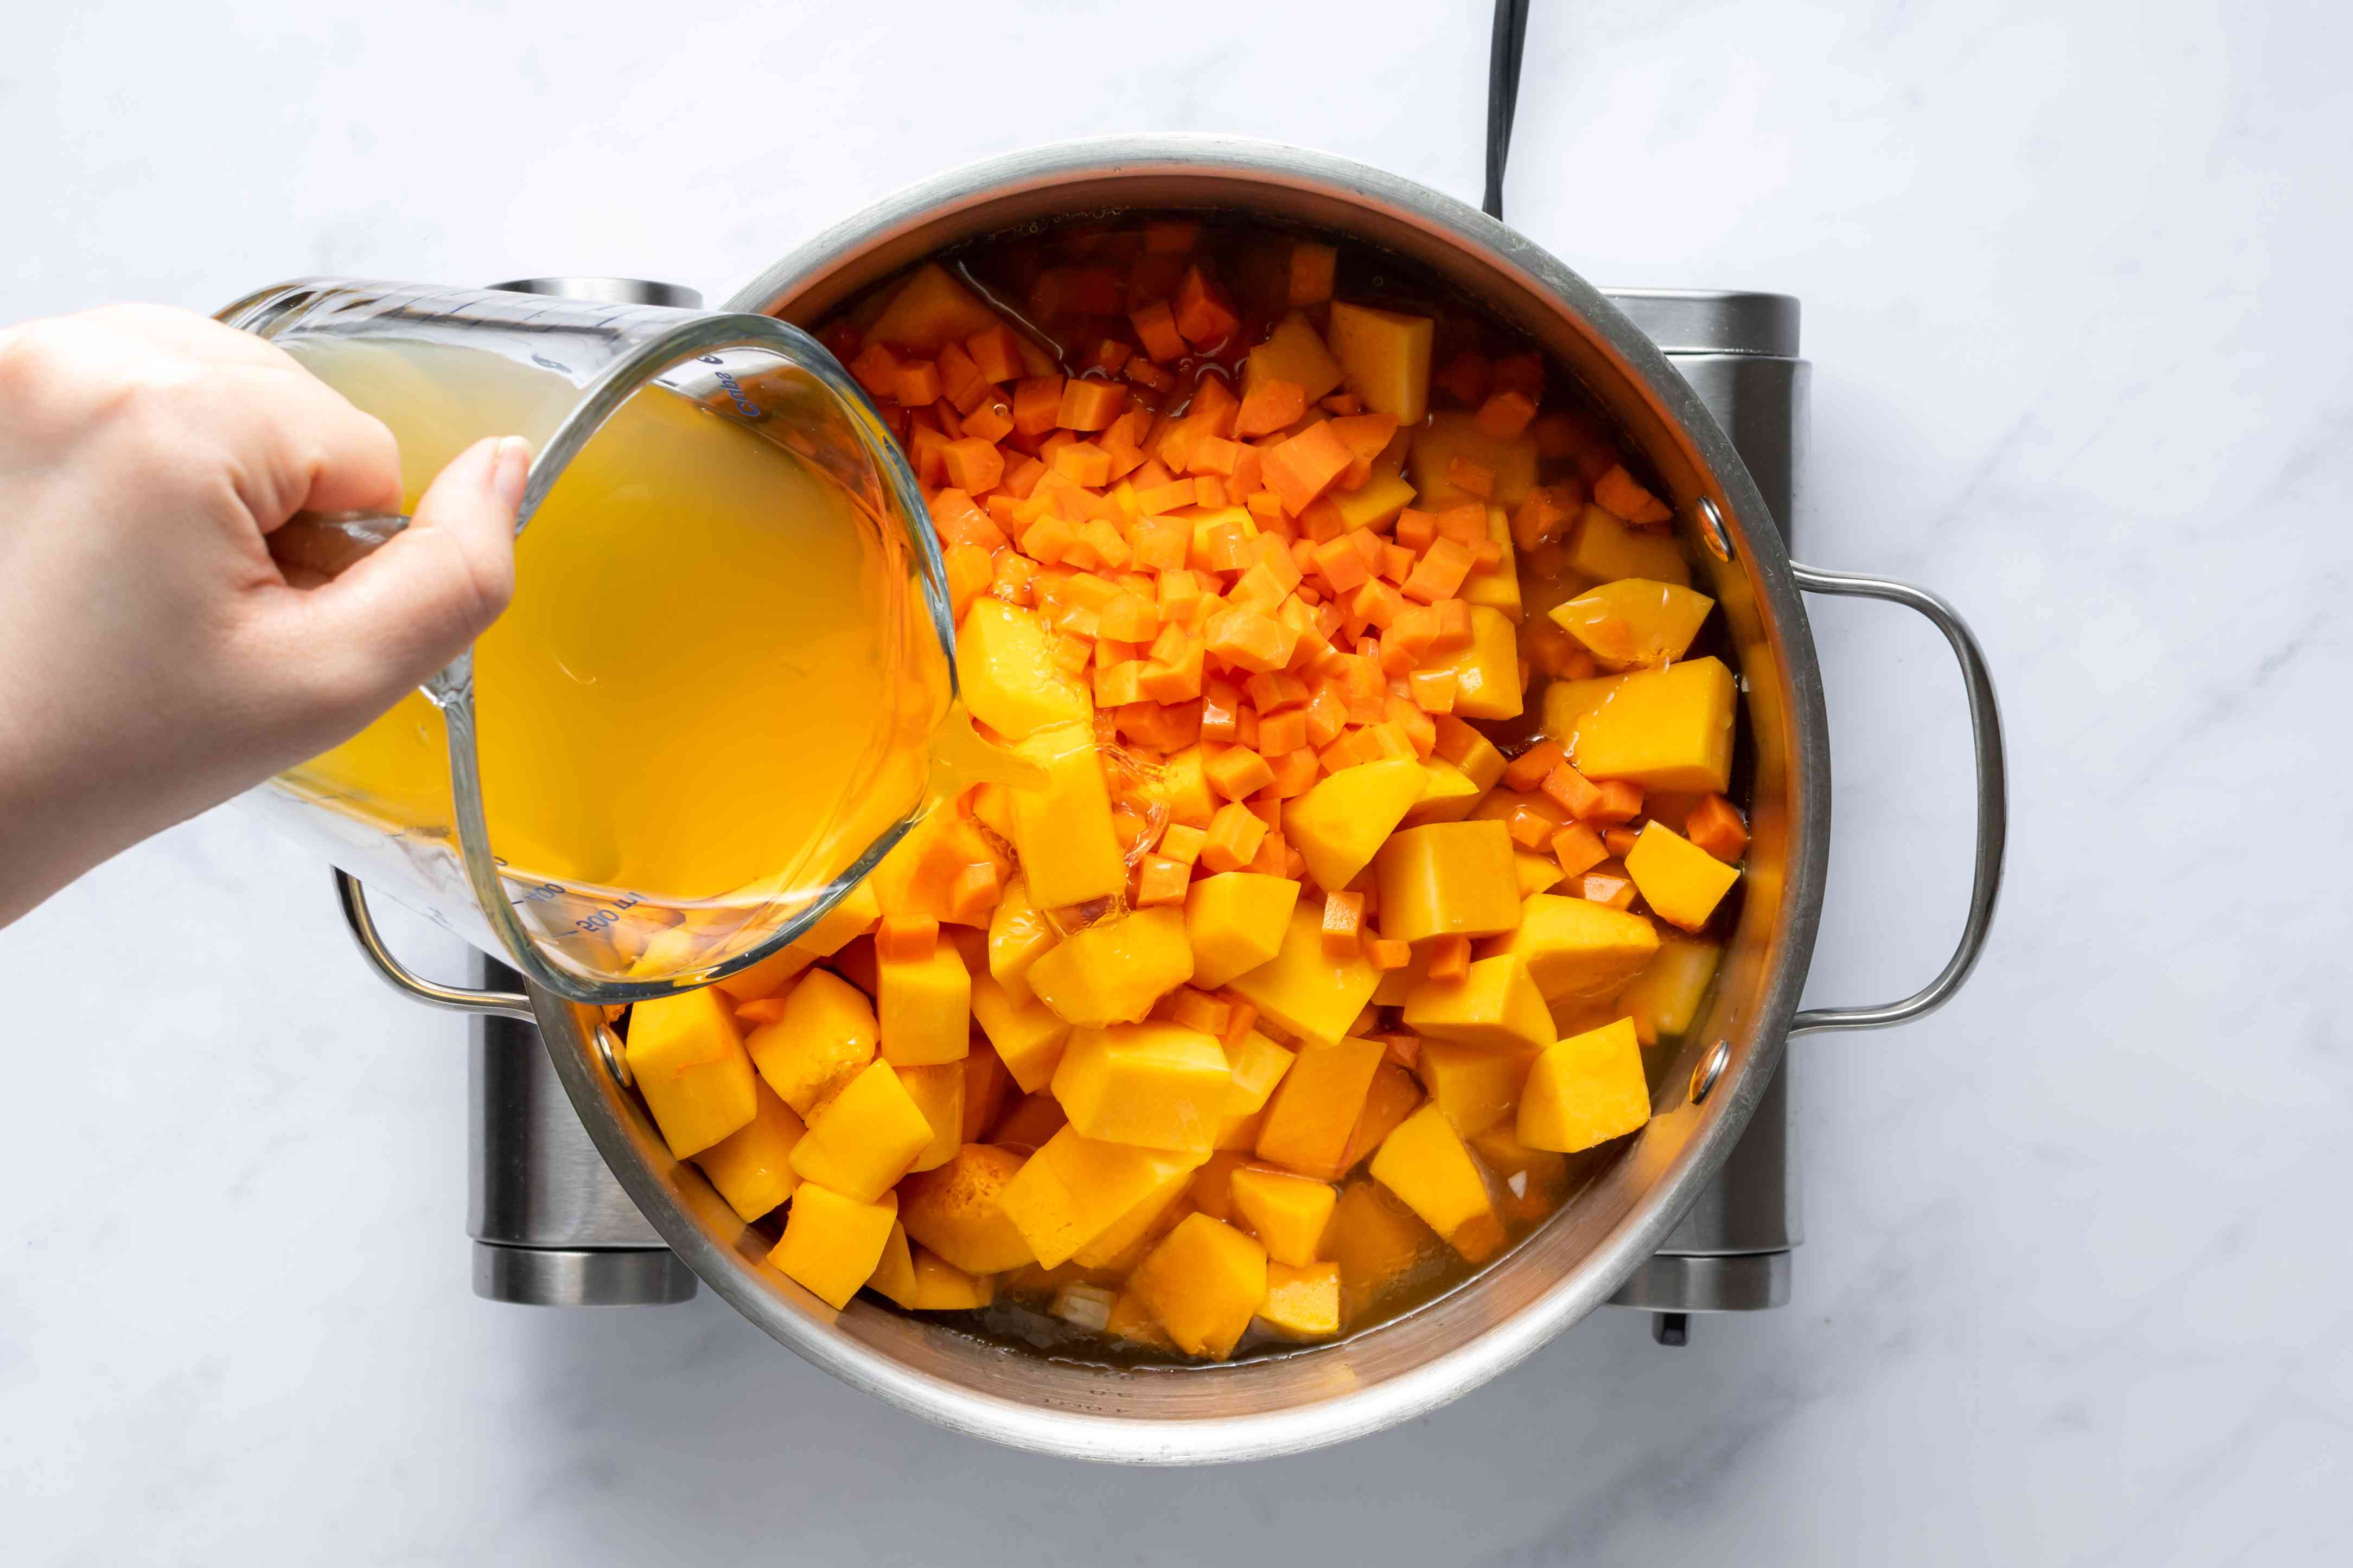 Add butternut squash and vegetable stock to pot